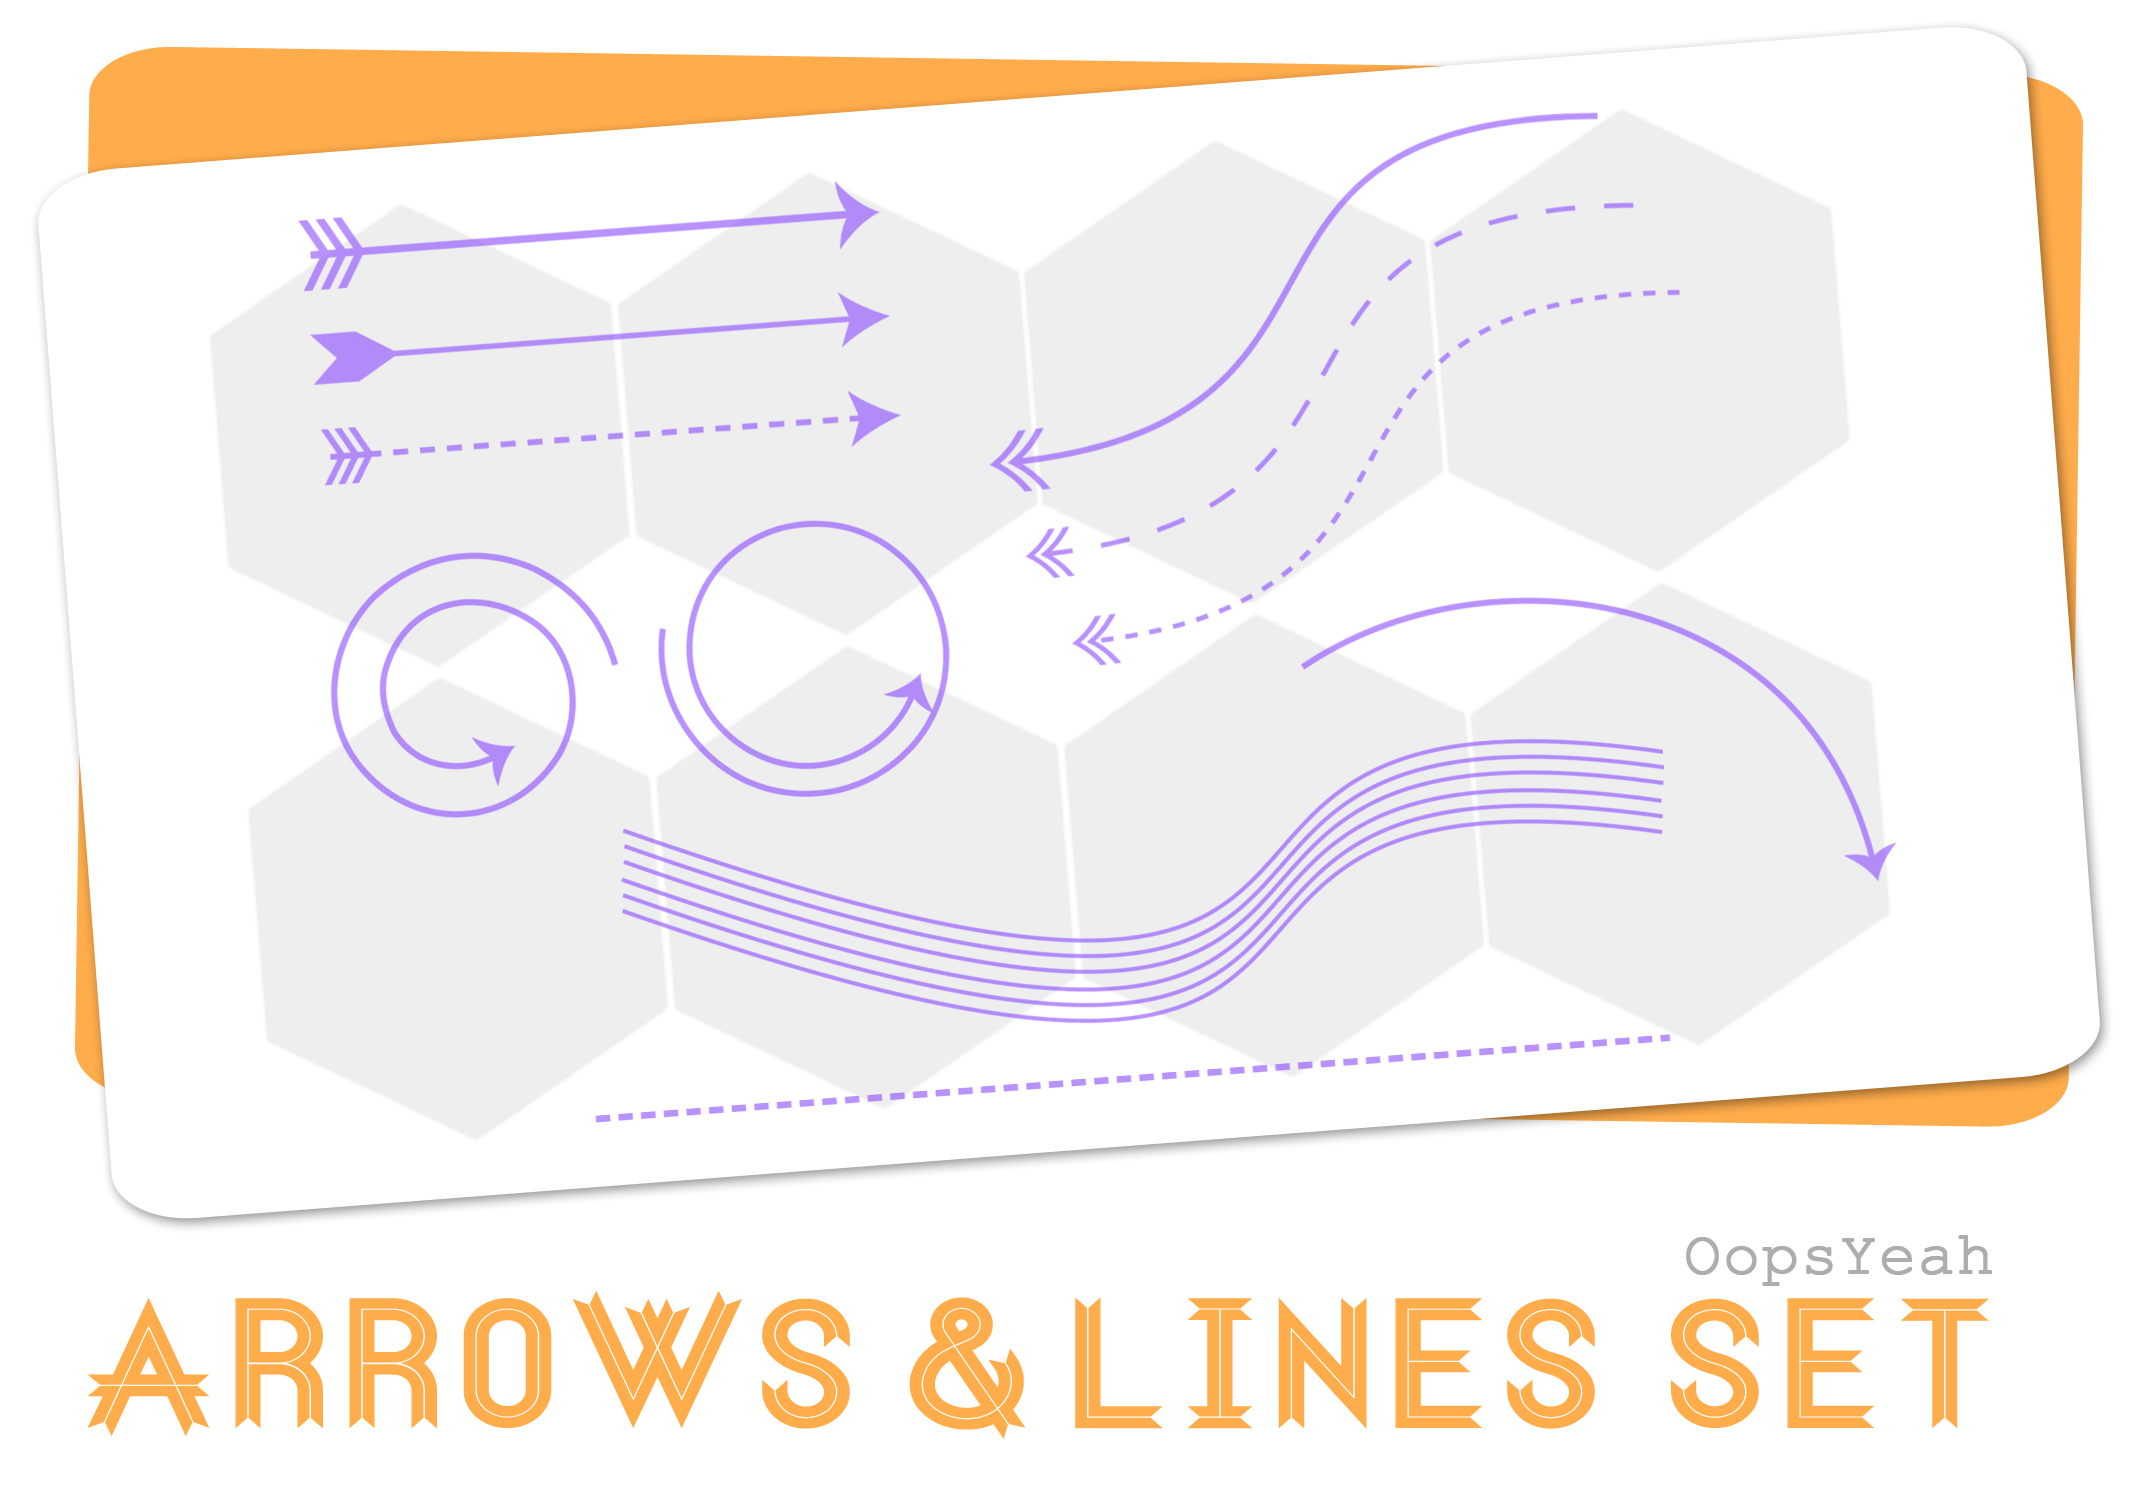 Arrows and lines brush set by oopsyeah on deviantart arrows and lines brush set by oopsyeah ccuart Image collections